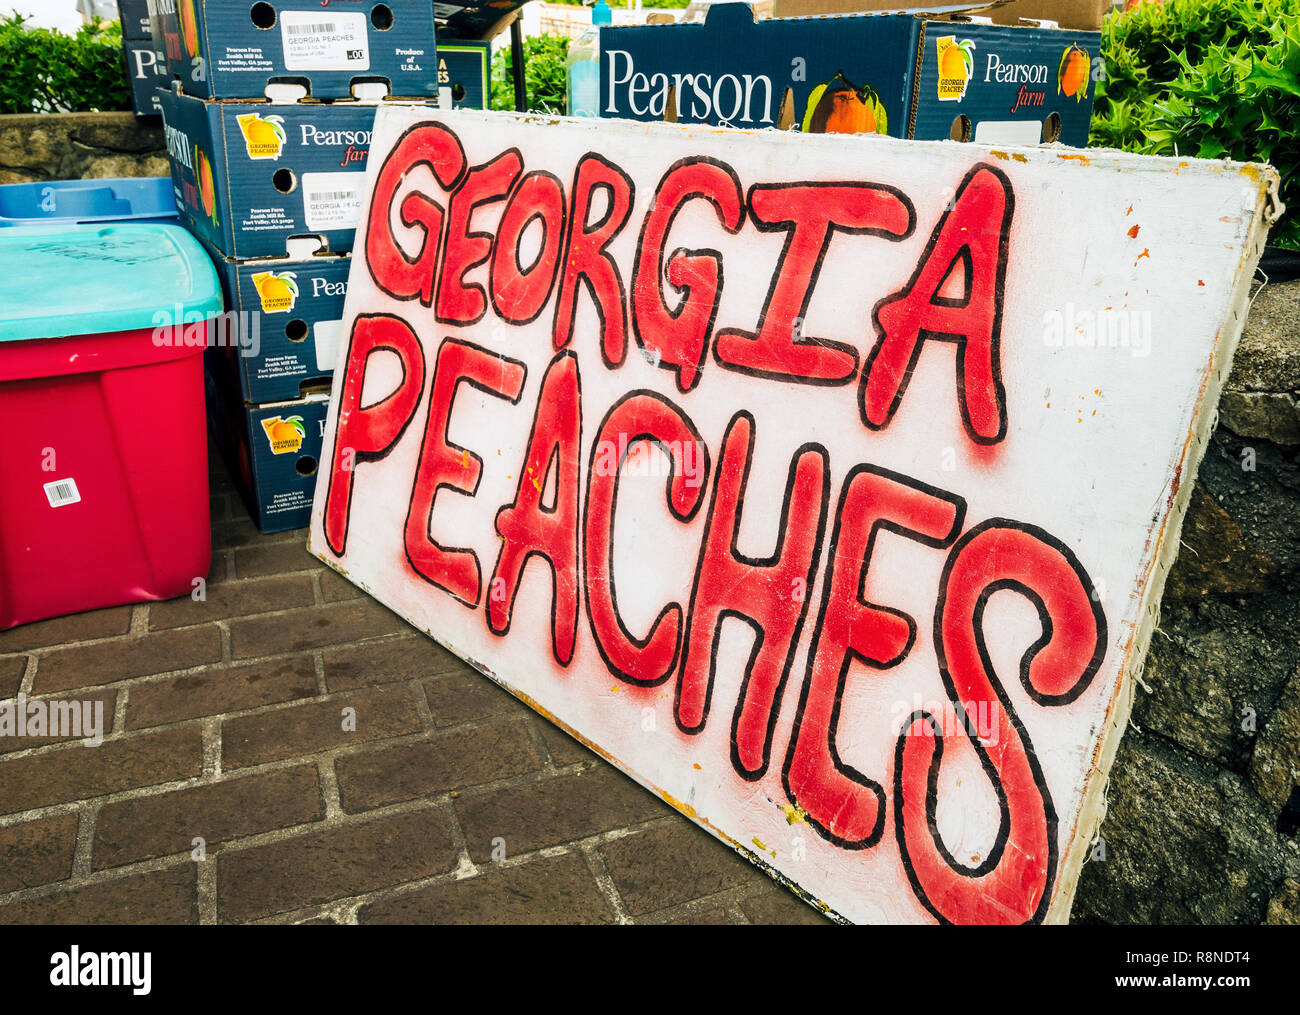 Fresh Georgia peaches, grown in Fort Valley, Georgia at Pearson Farm, are stacked for sale at the Tucker Farmers Market in downtown Tucker, Georgia. Stock Photo